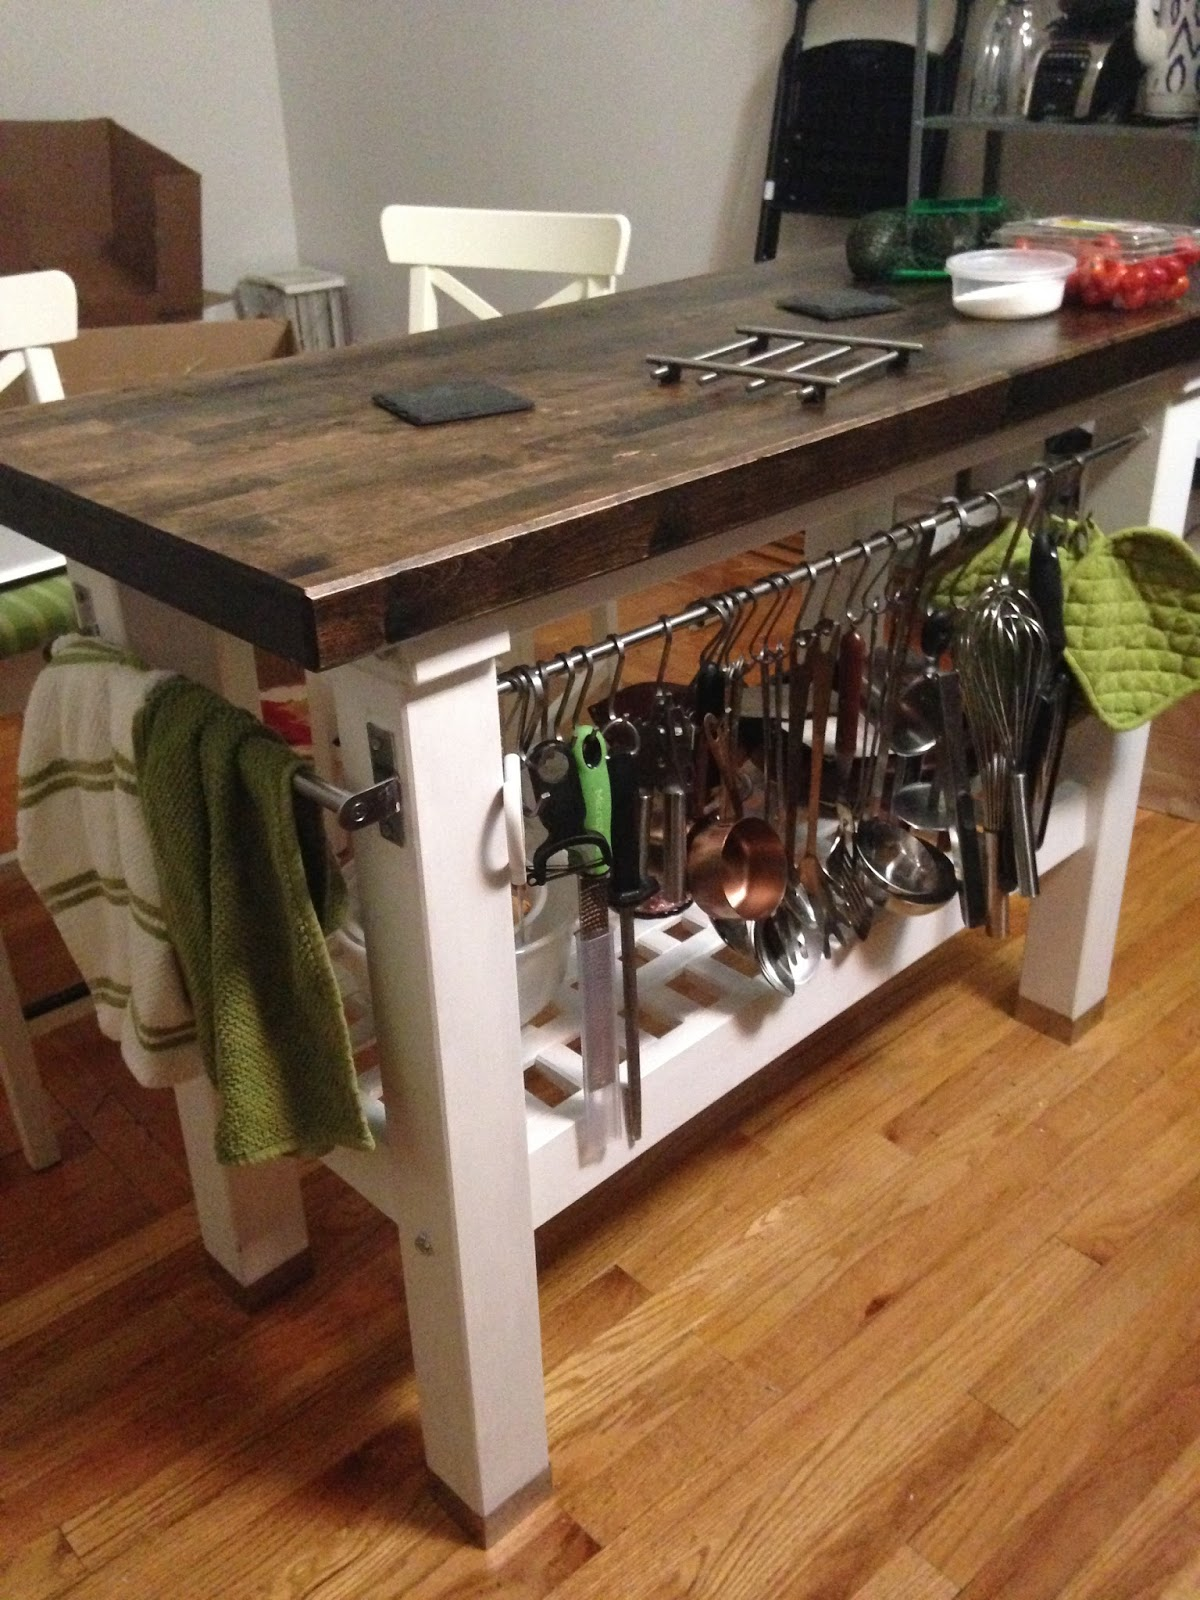 kitchen island bar stools aid bake and baste: how to stain finish a rustic ...